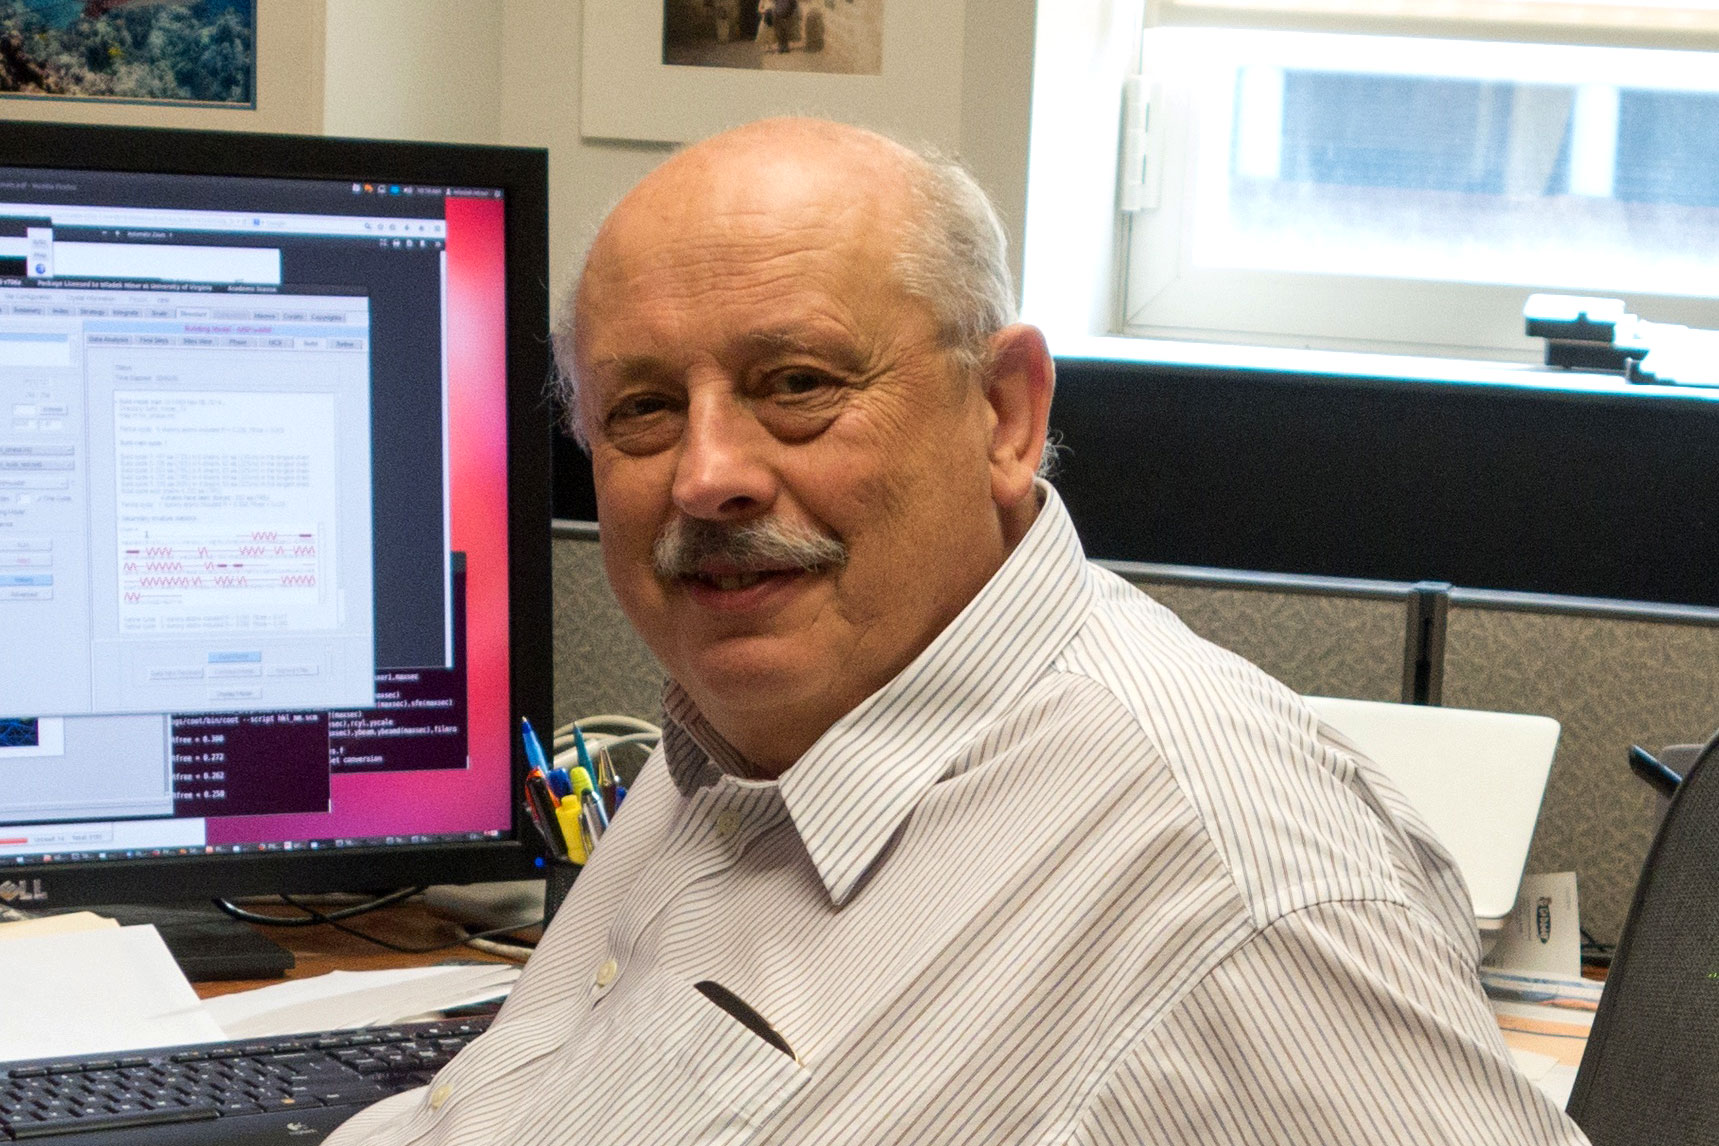 Wladek Minor of UVA's Department of Molecular Physiology and Biological Physics led the research effort to image zinc and serum albumin. (UVA Health System photo)